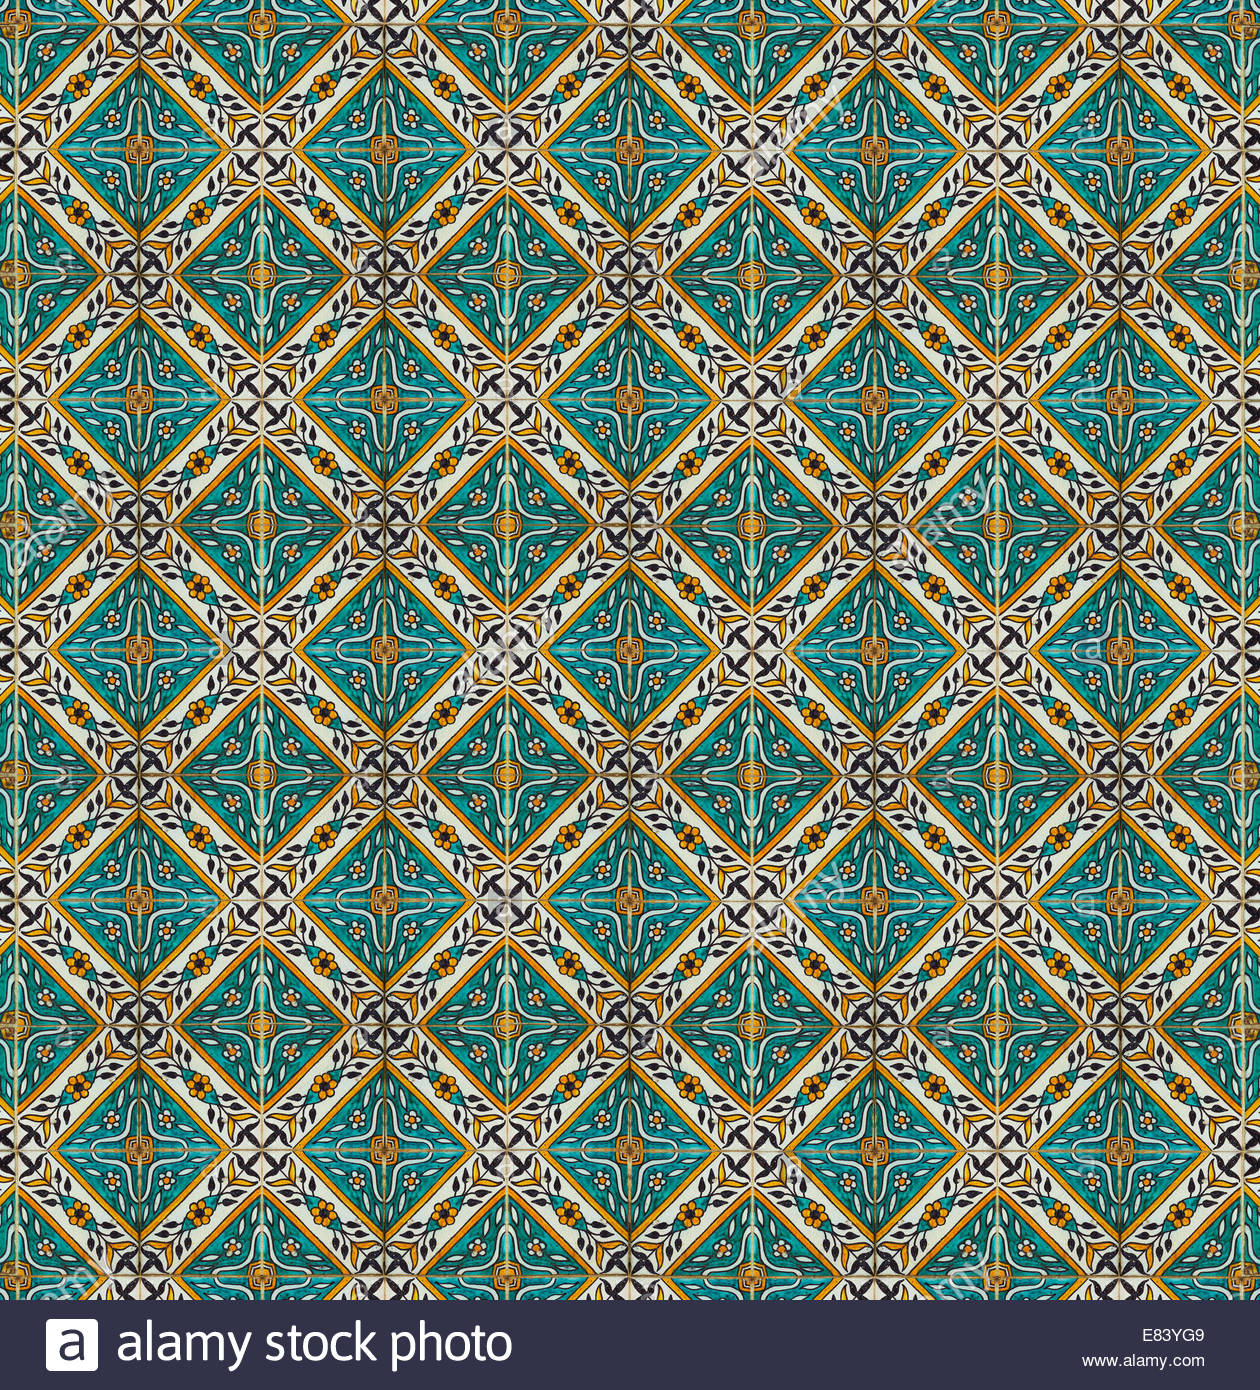 intricate ceramic tile design in a repeating pattern spanish stock